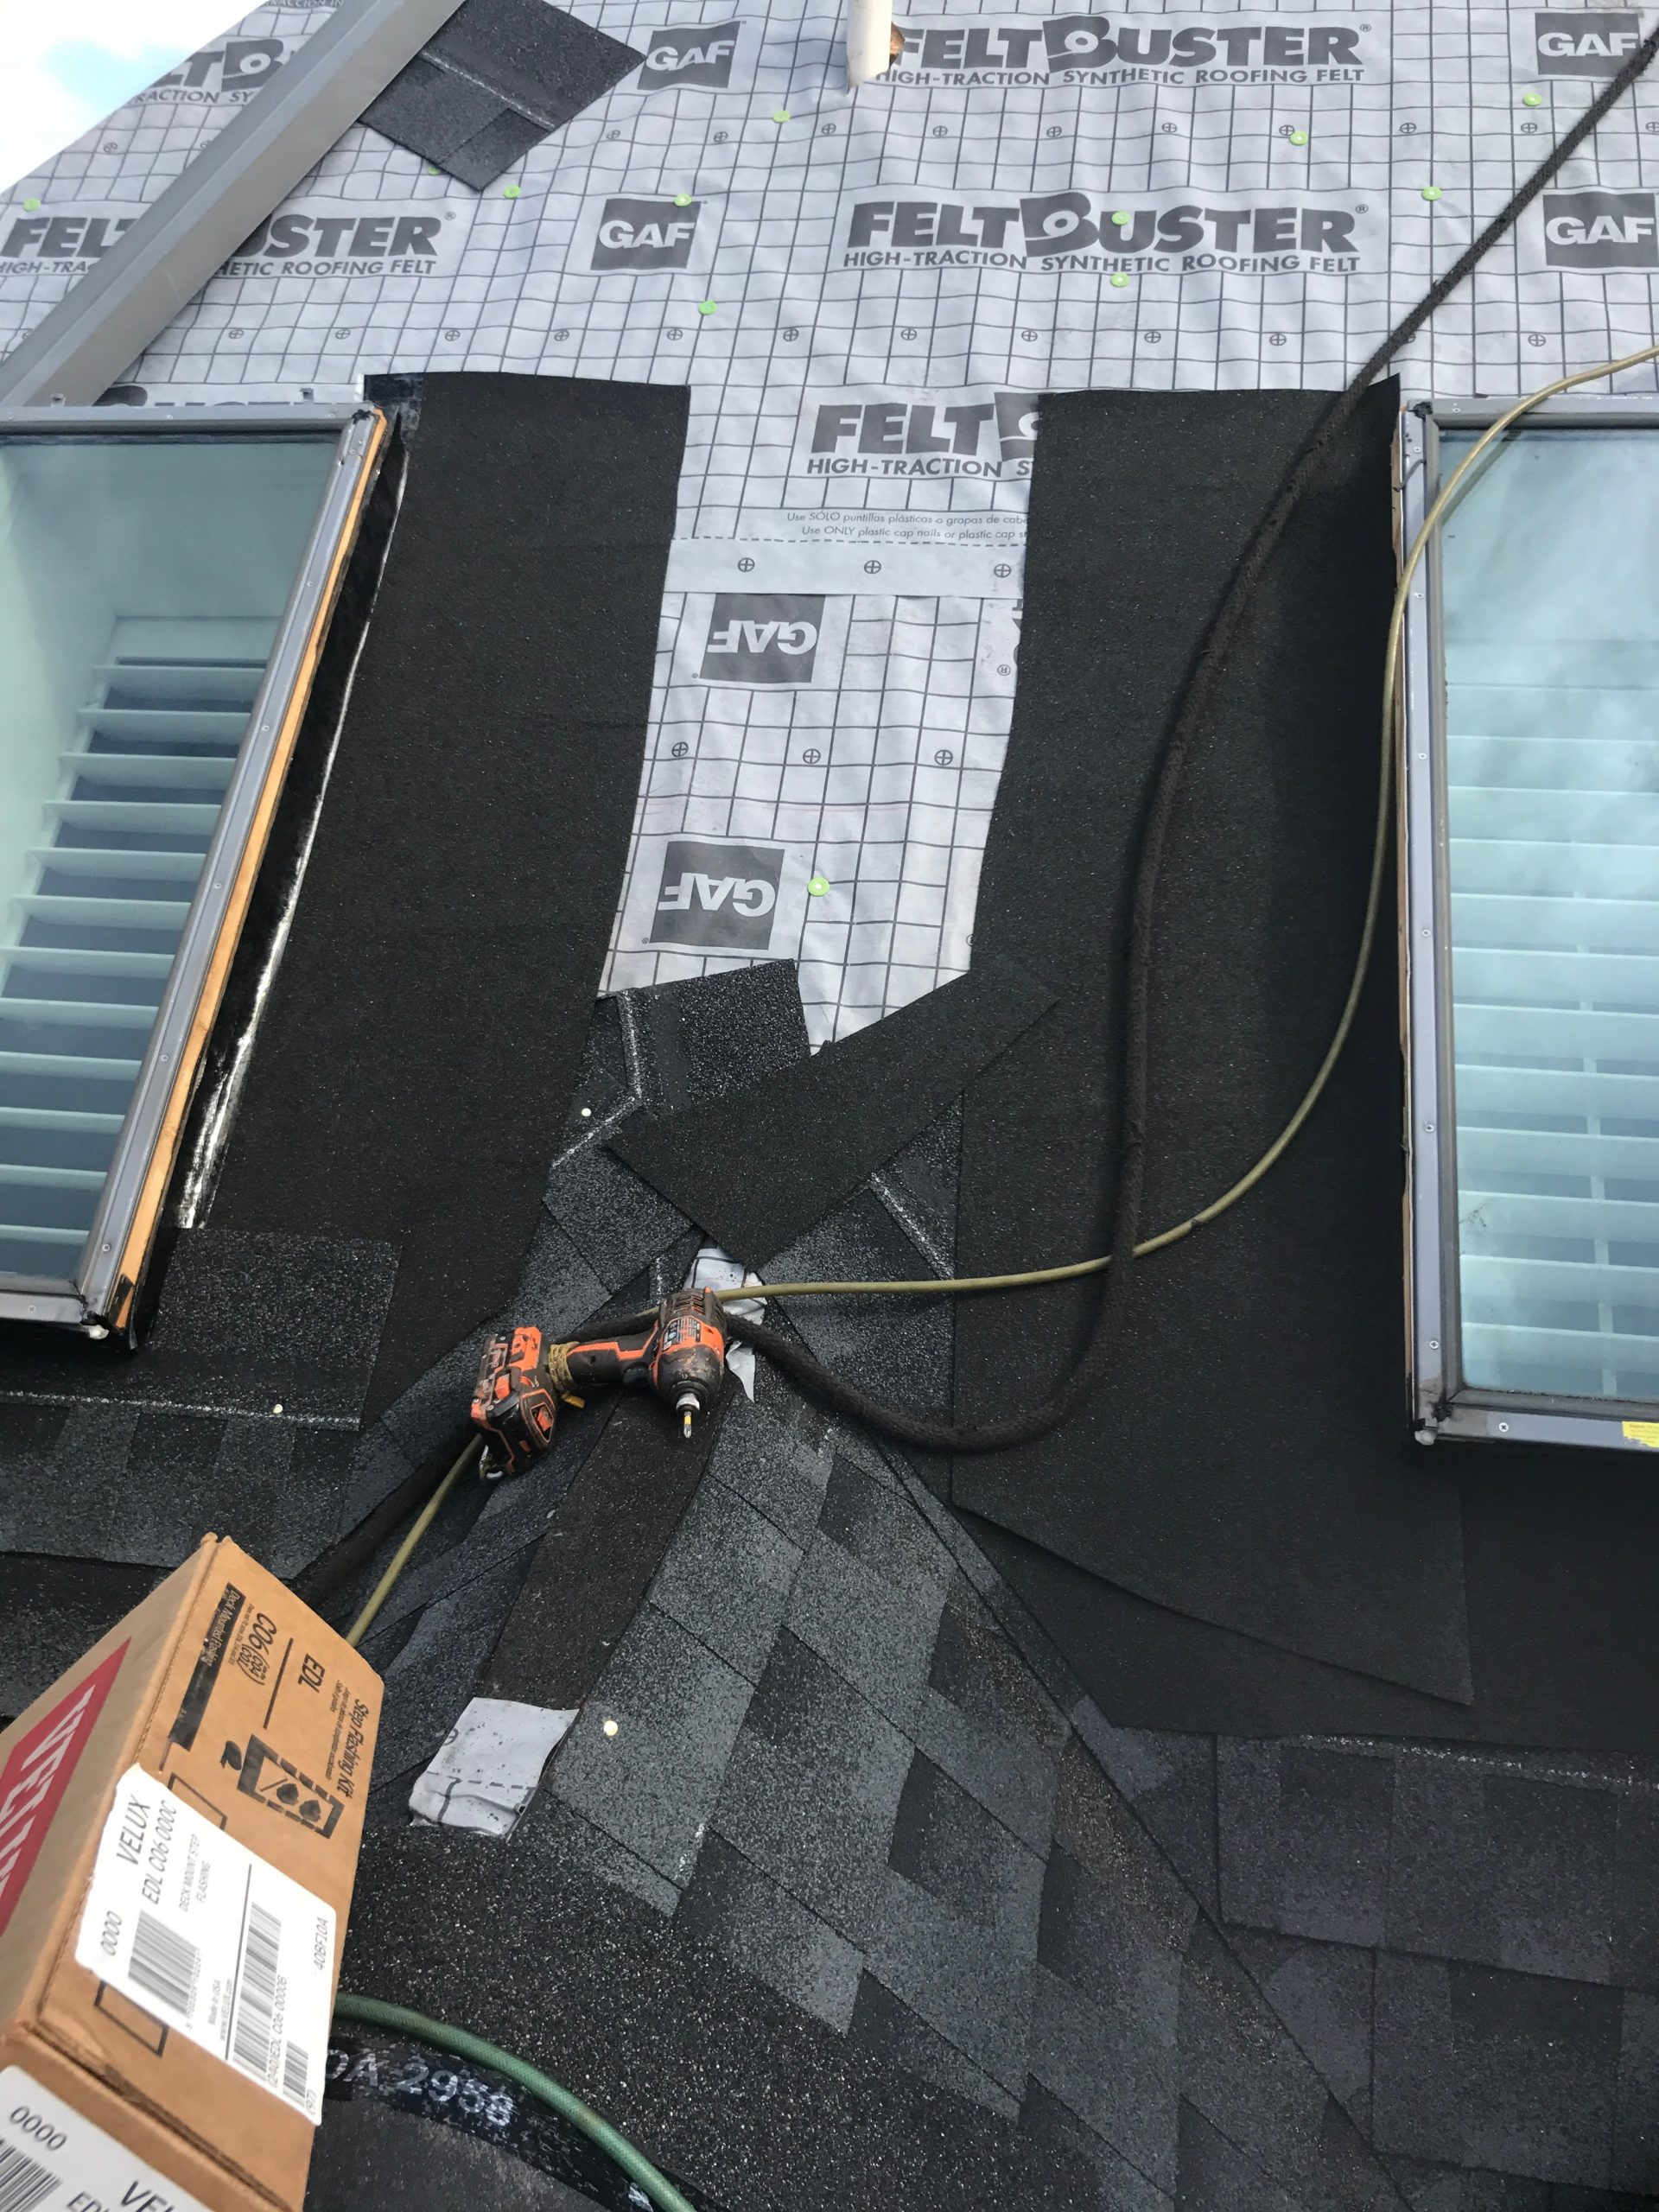 This is a view of installation of flashing at the skylight you can also see the GAF Feltbuster on the roof.